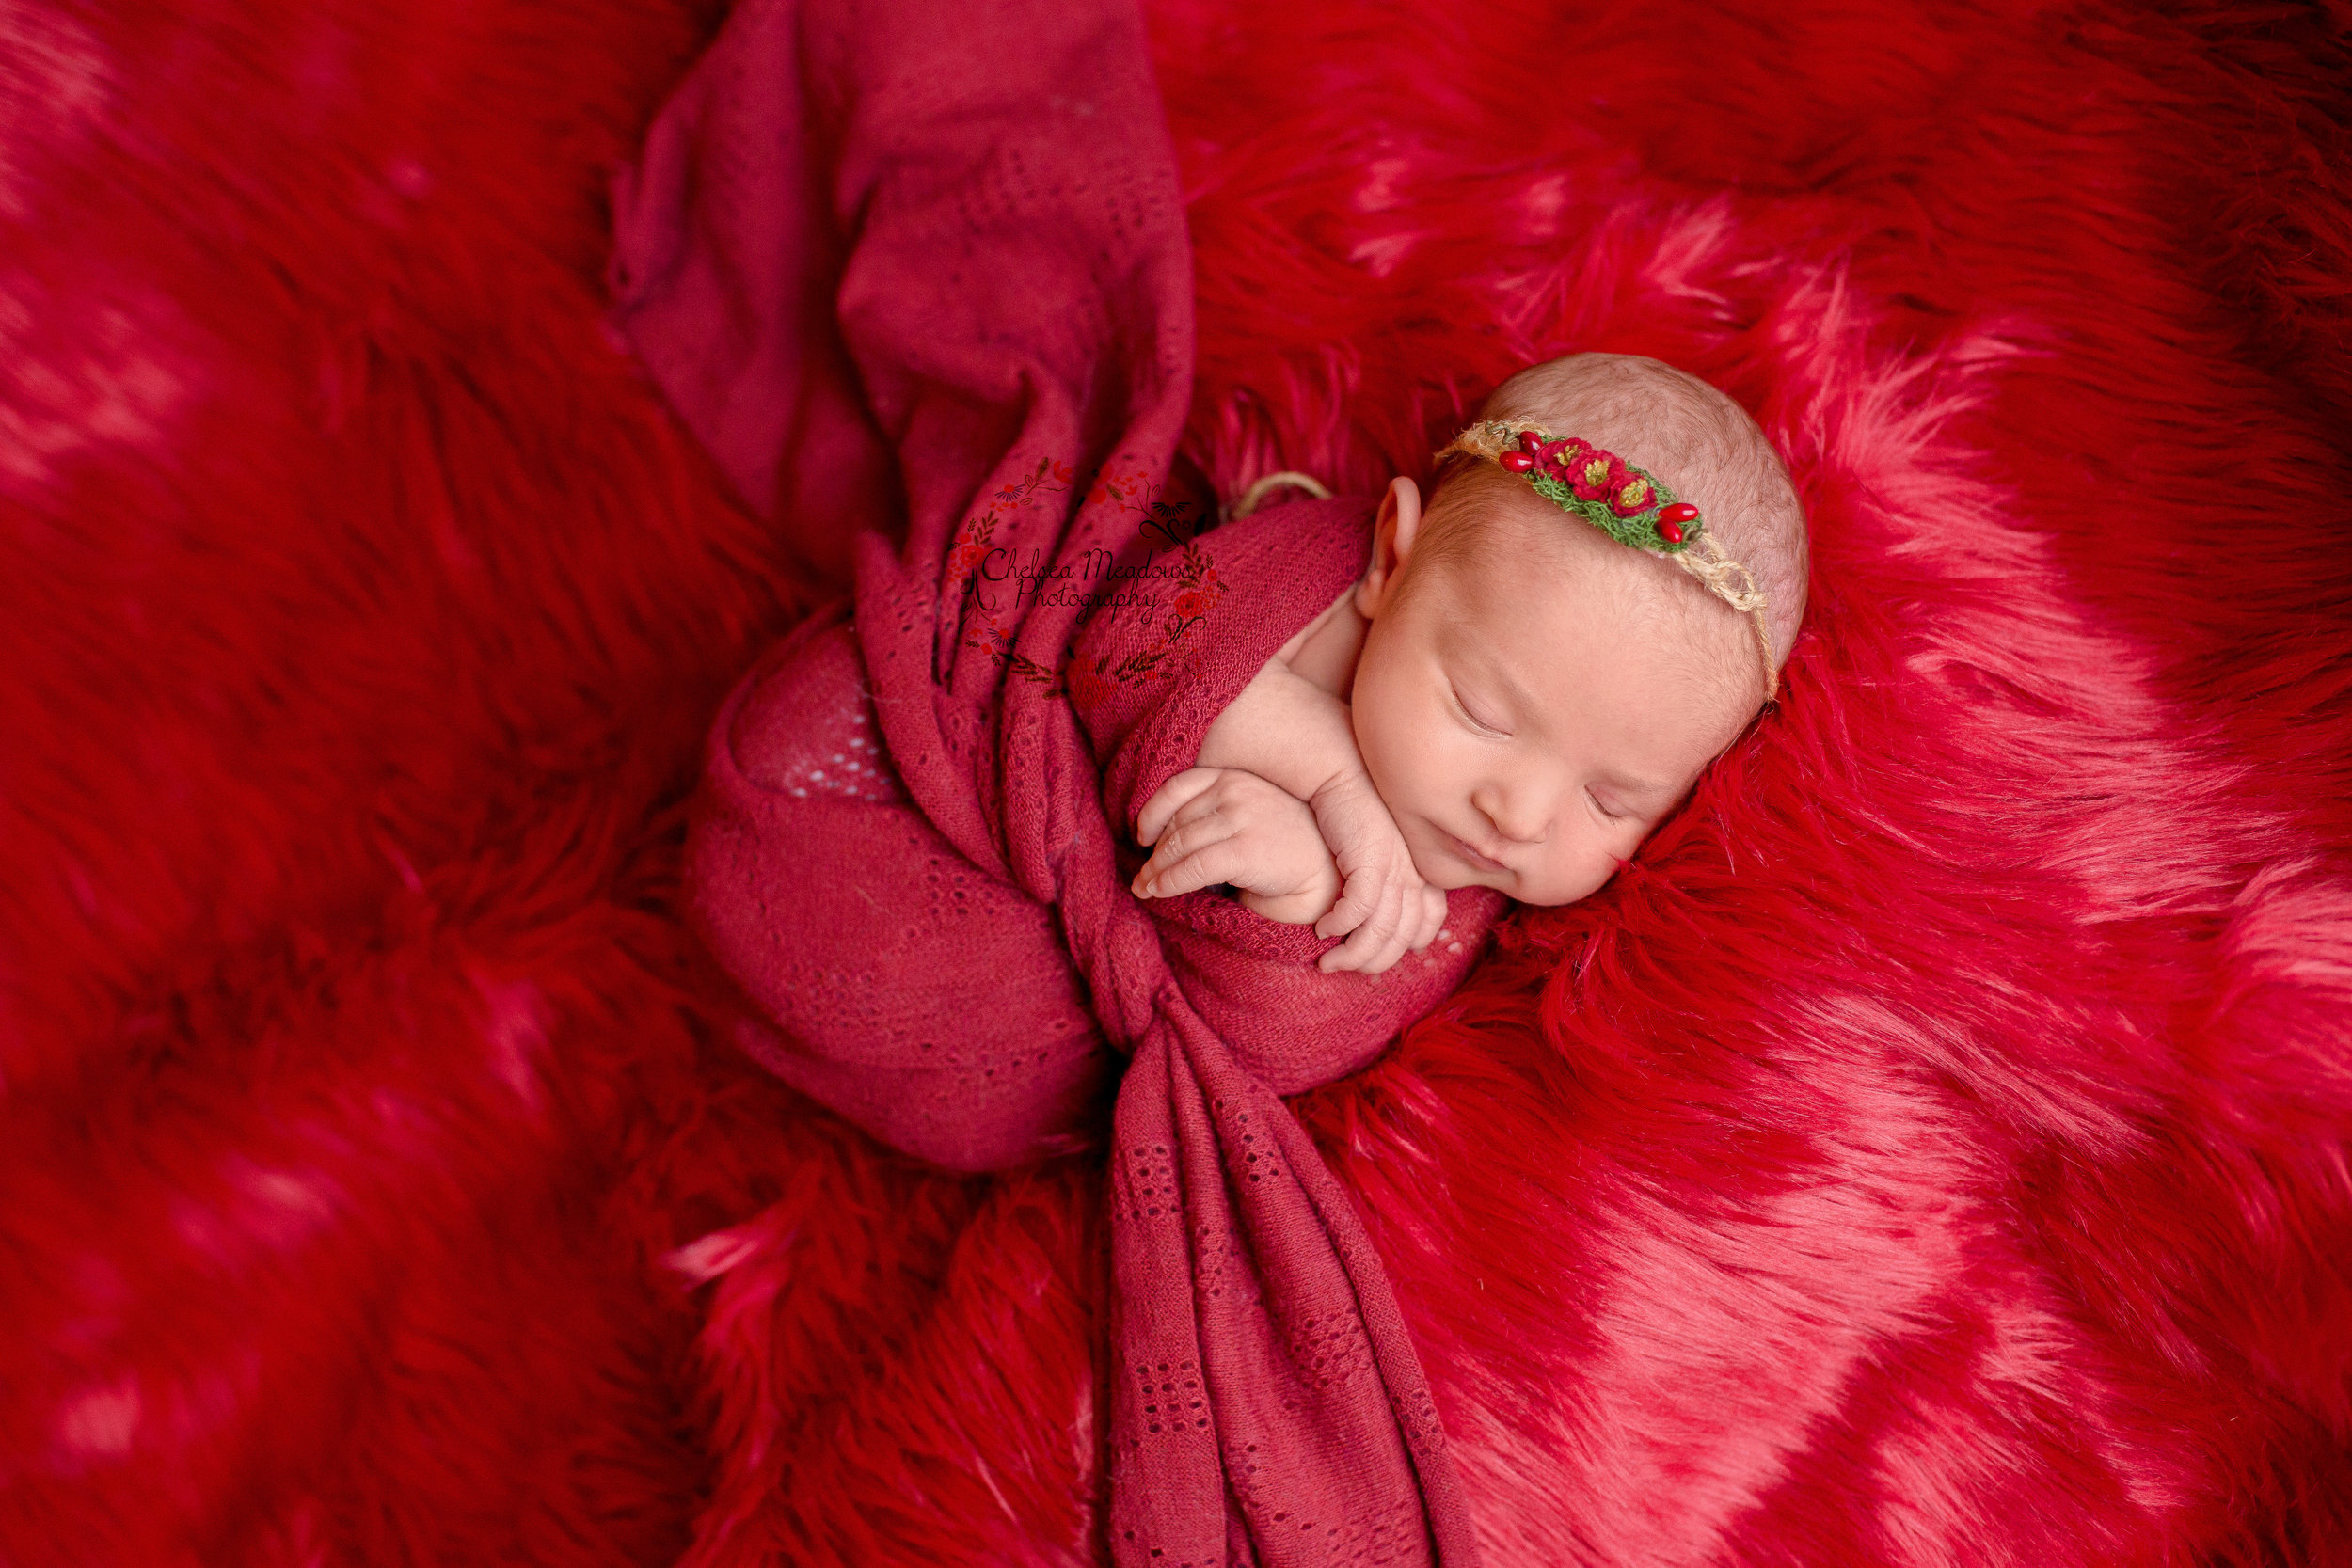 Tessa Newborn - Nashville Newborn Photographer - Chelsea Meadows Photography (41).jpg